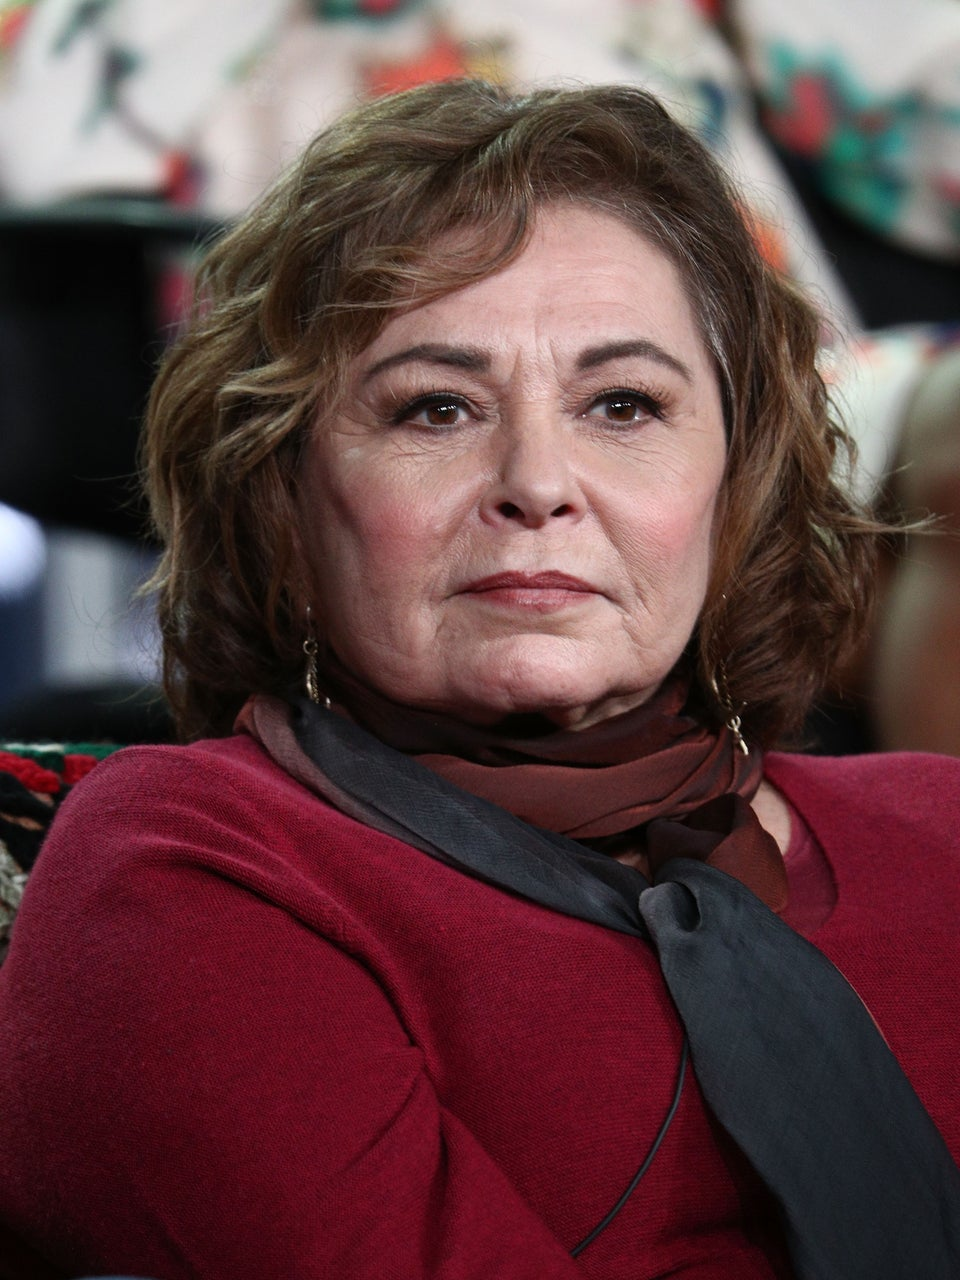 Roseanne Barr Compares Obama Adviser Valerie Jarrett To An Ape, And The Internet Is Not Having It!